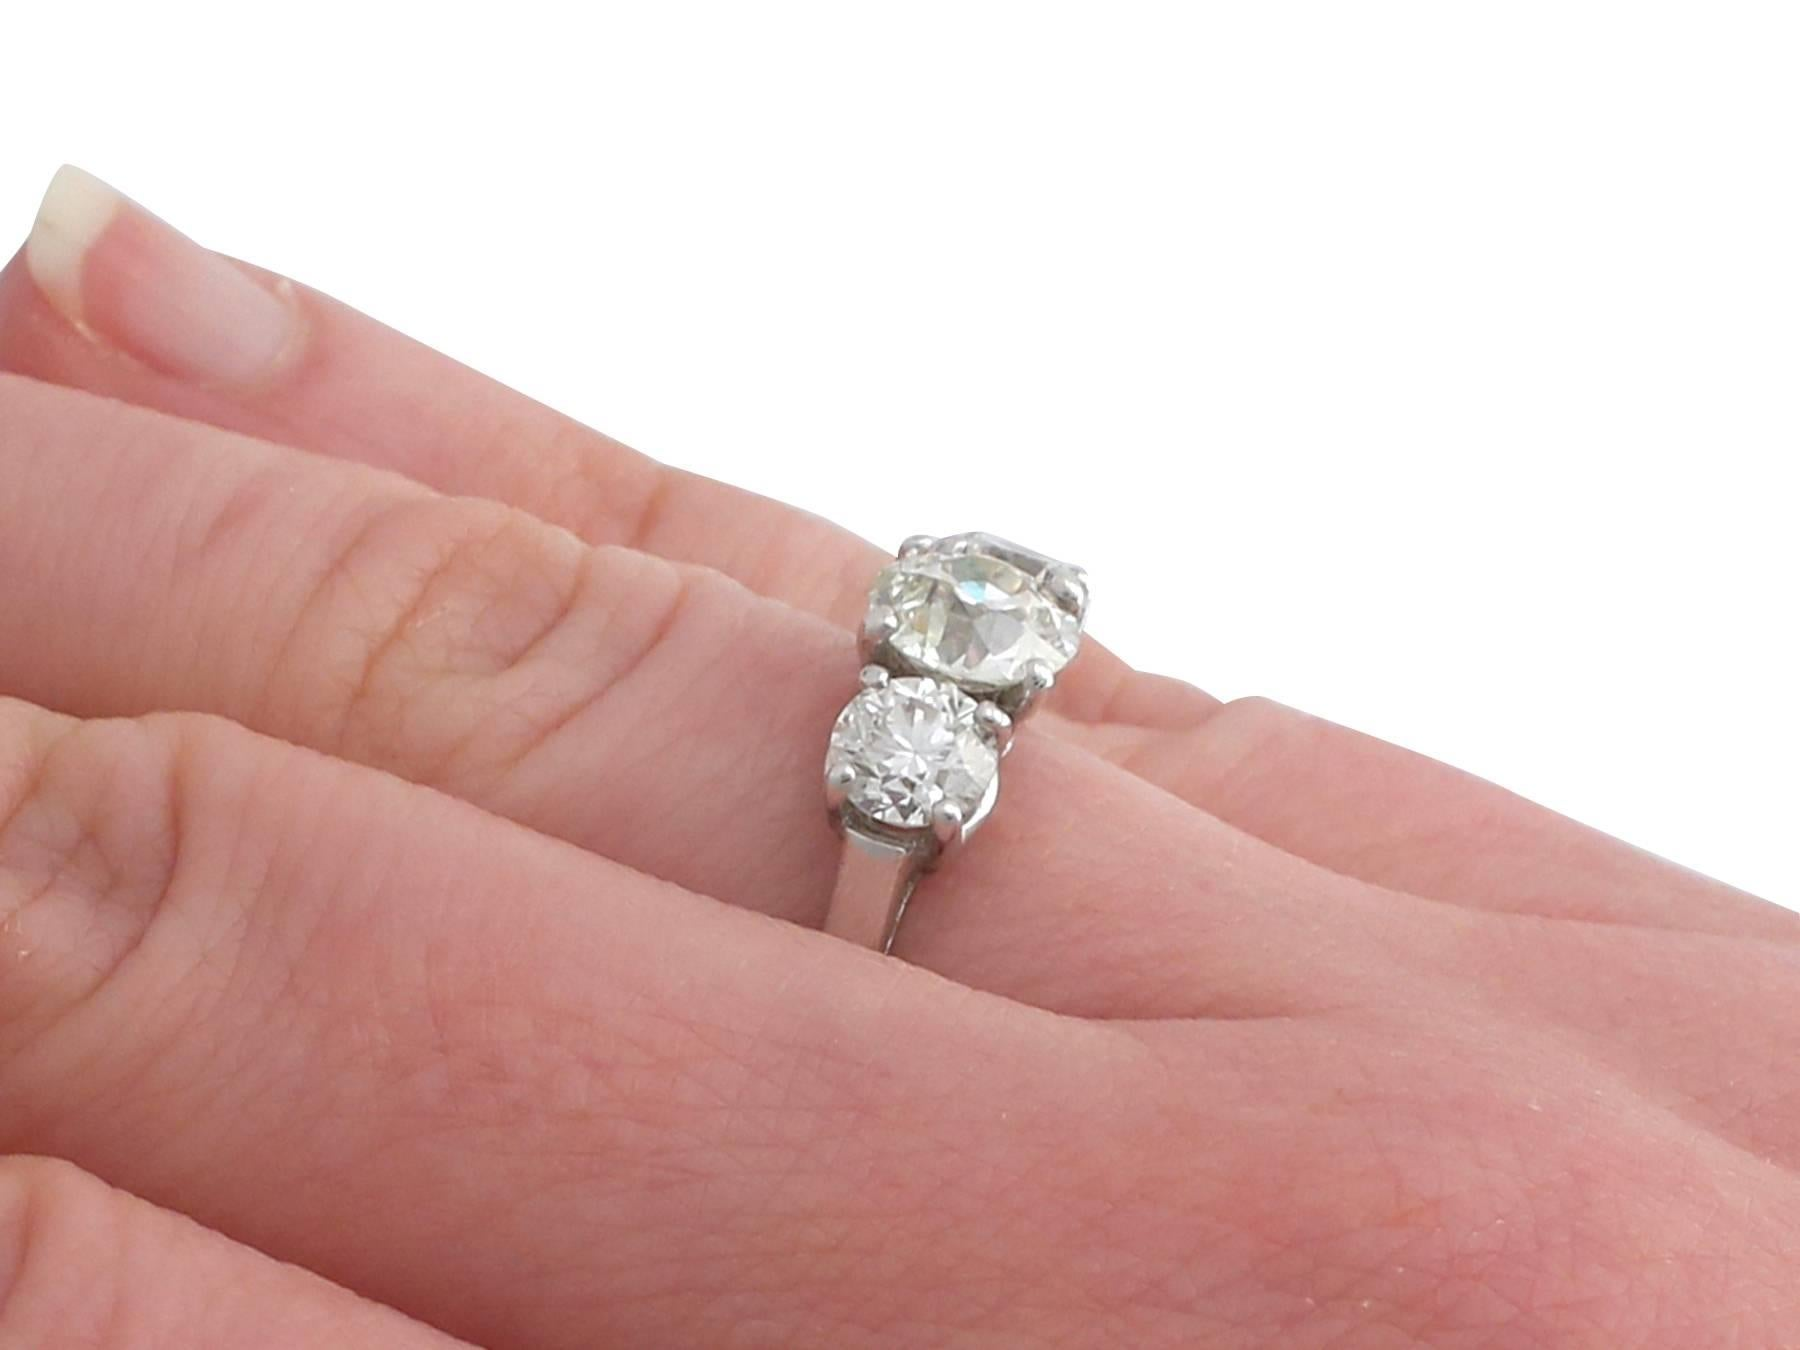 1980s 2.65 Carat Diamond and Platinum Trilogy Ring For Sale at 1stdibs